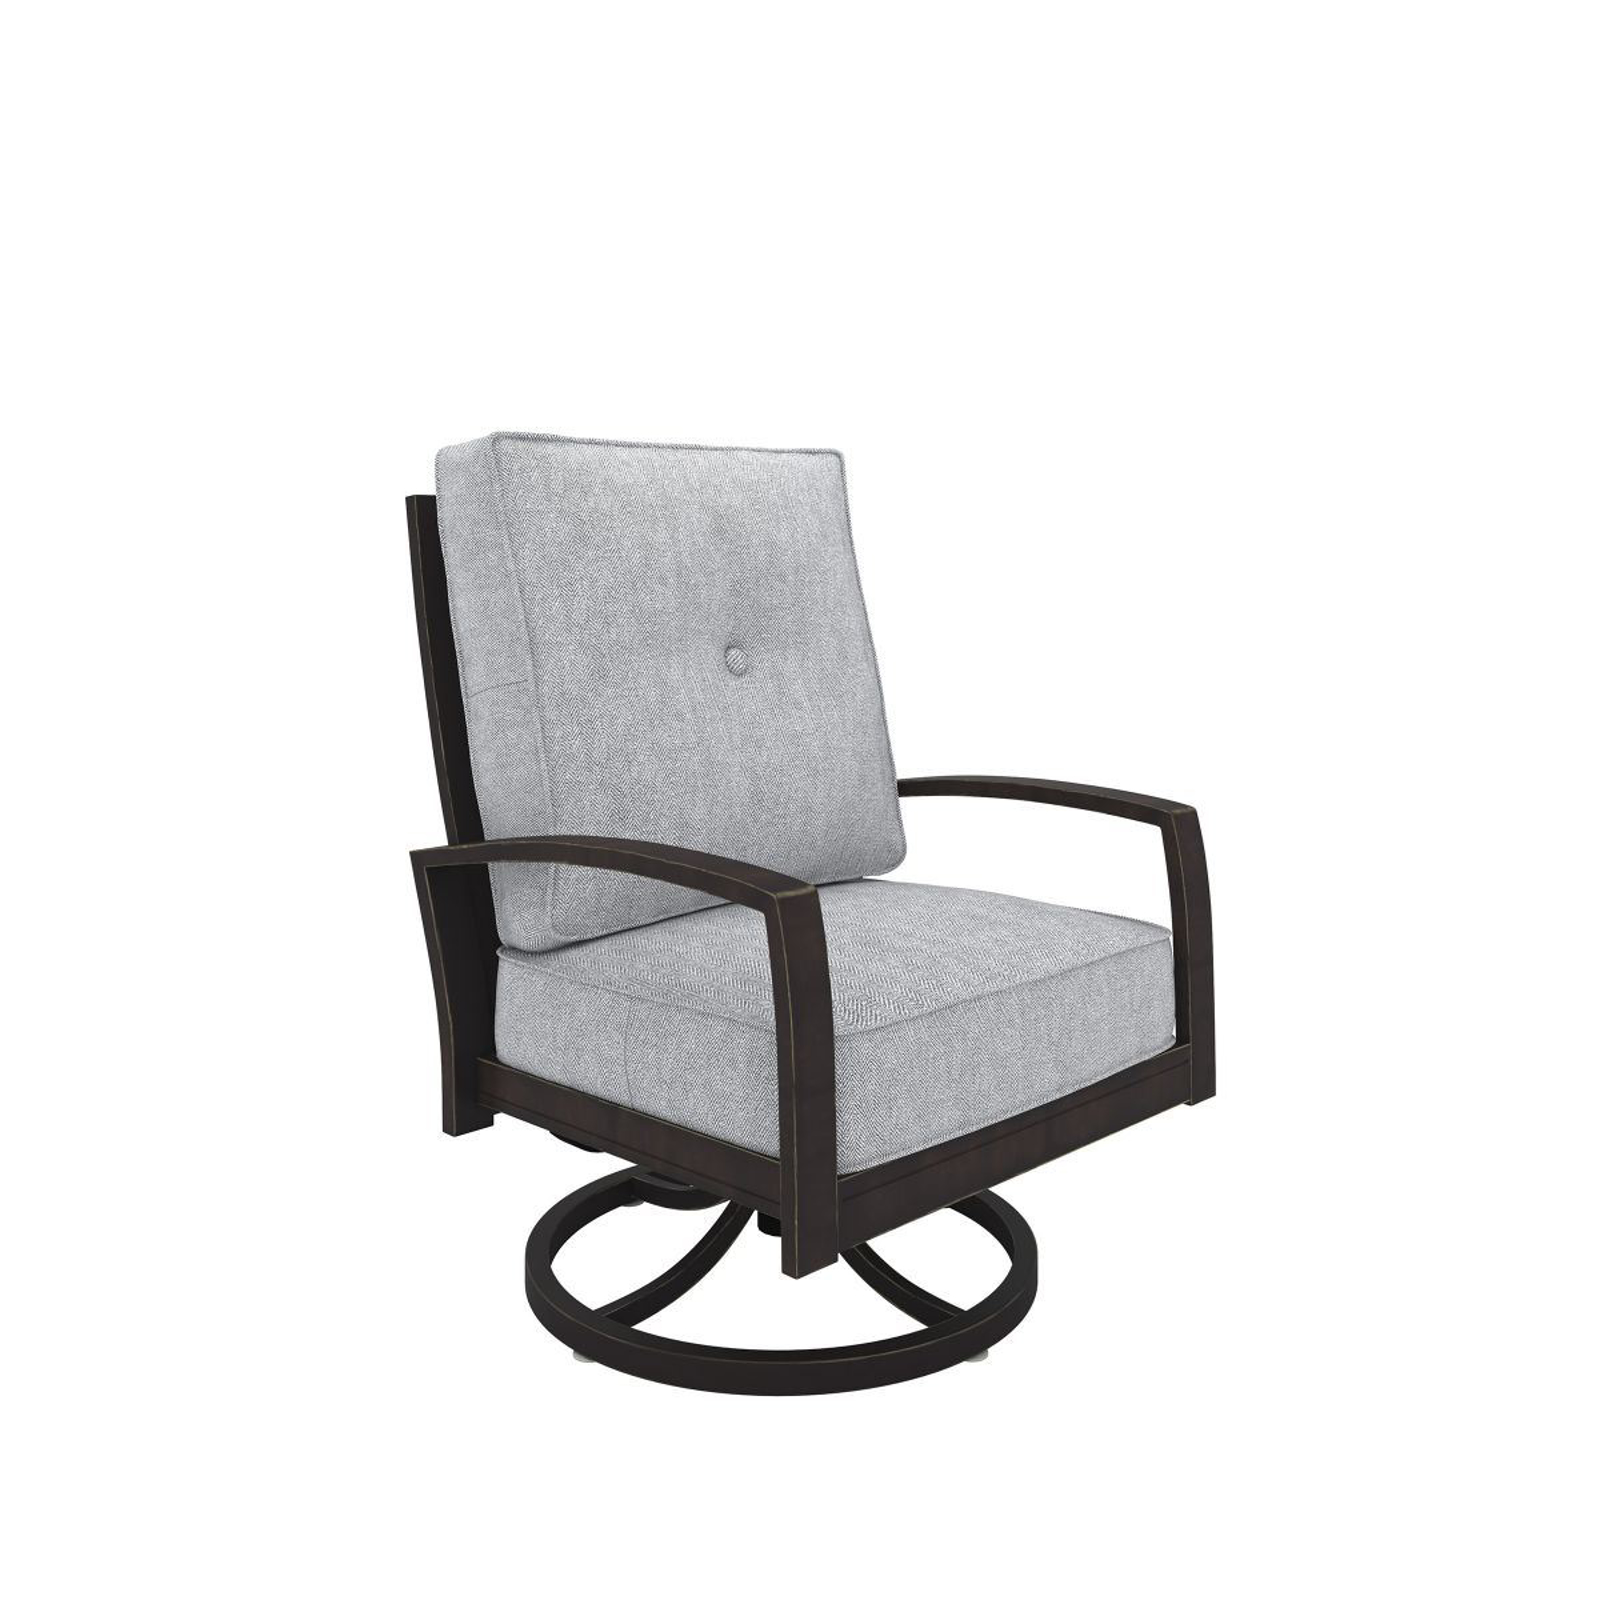 Picture of Castle Island Patio Chair